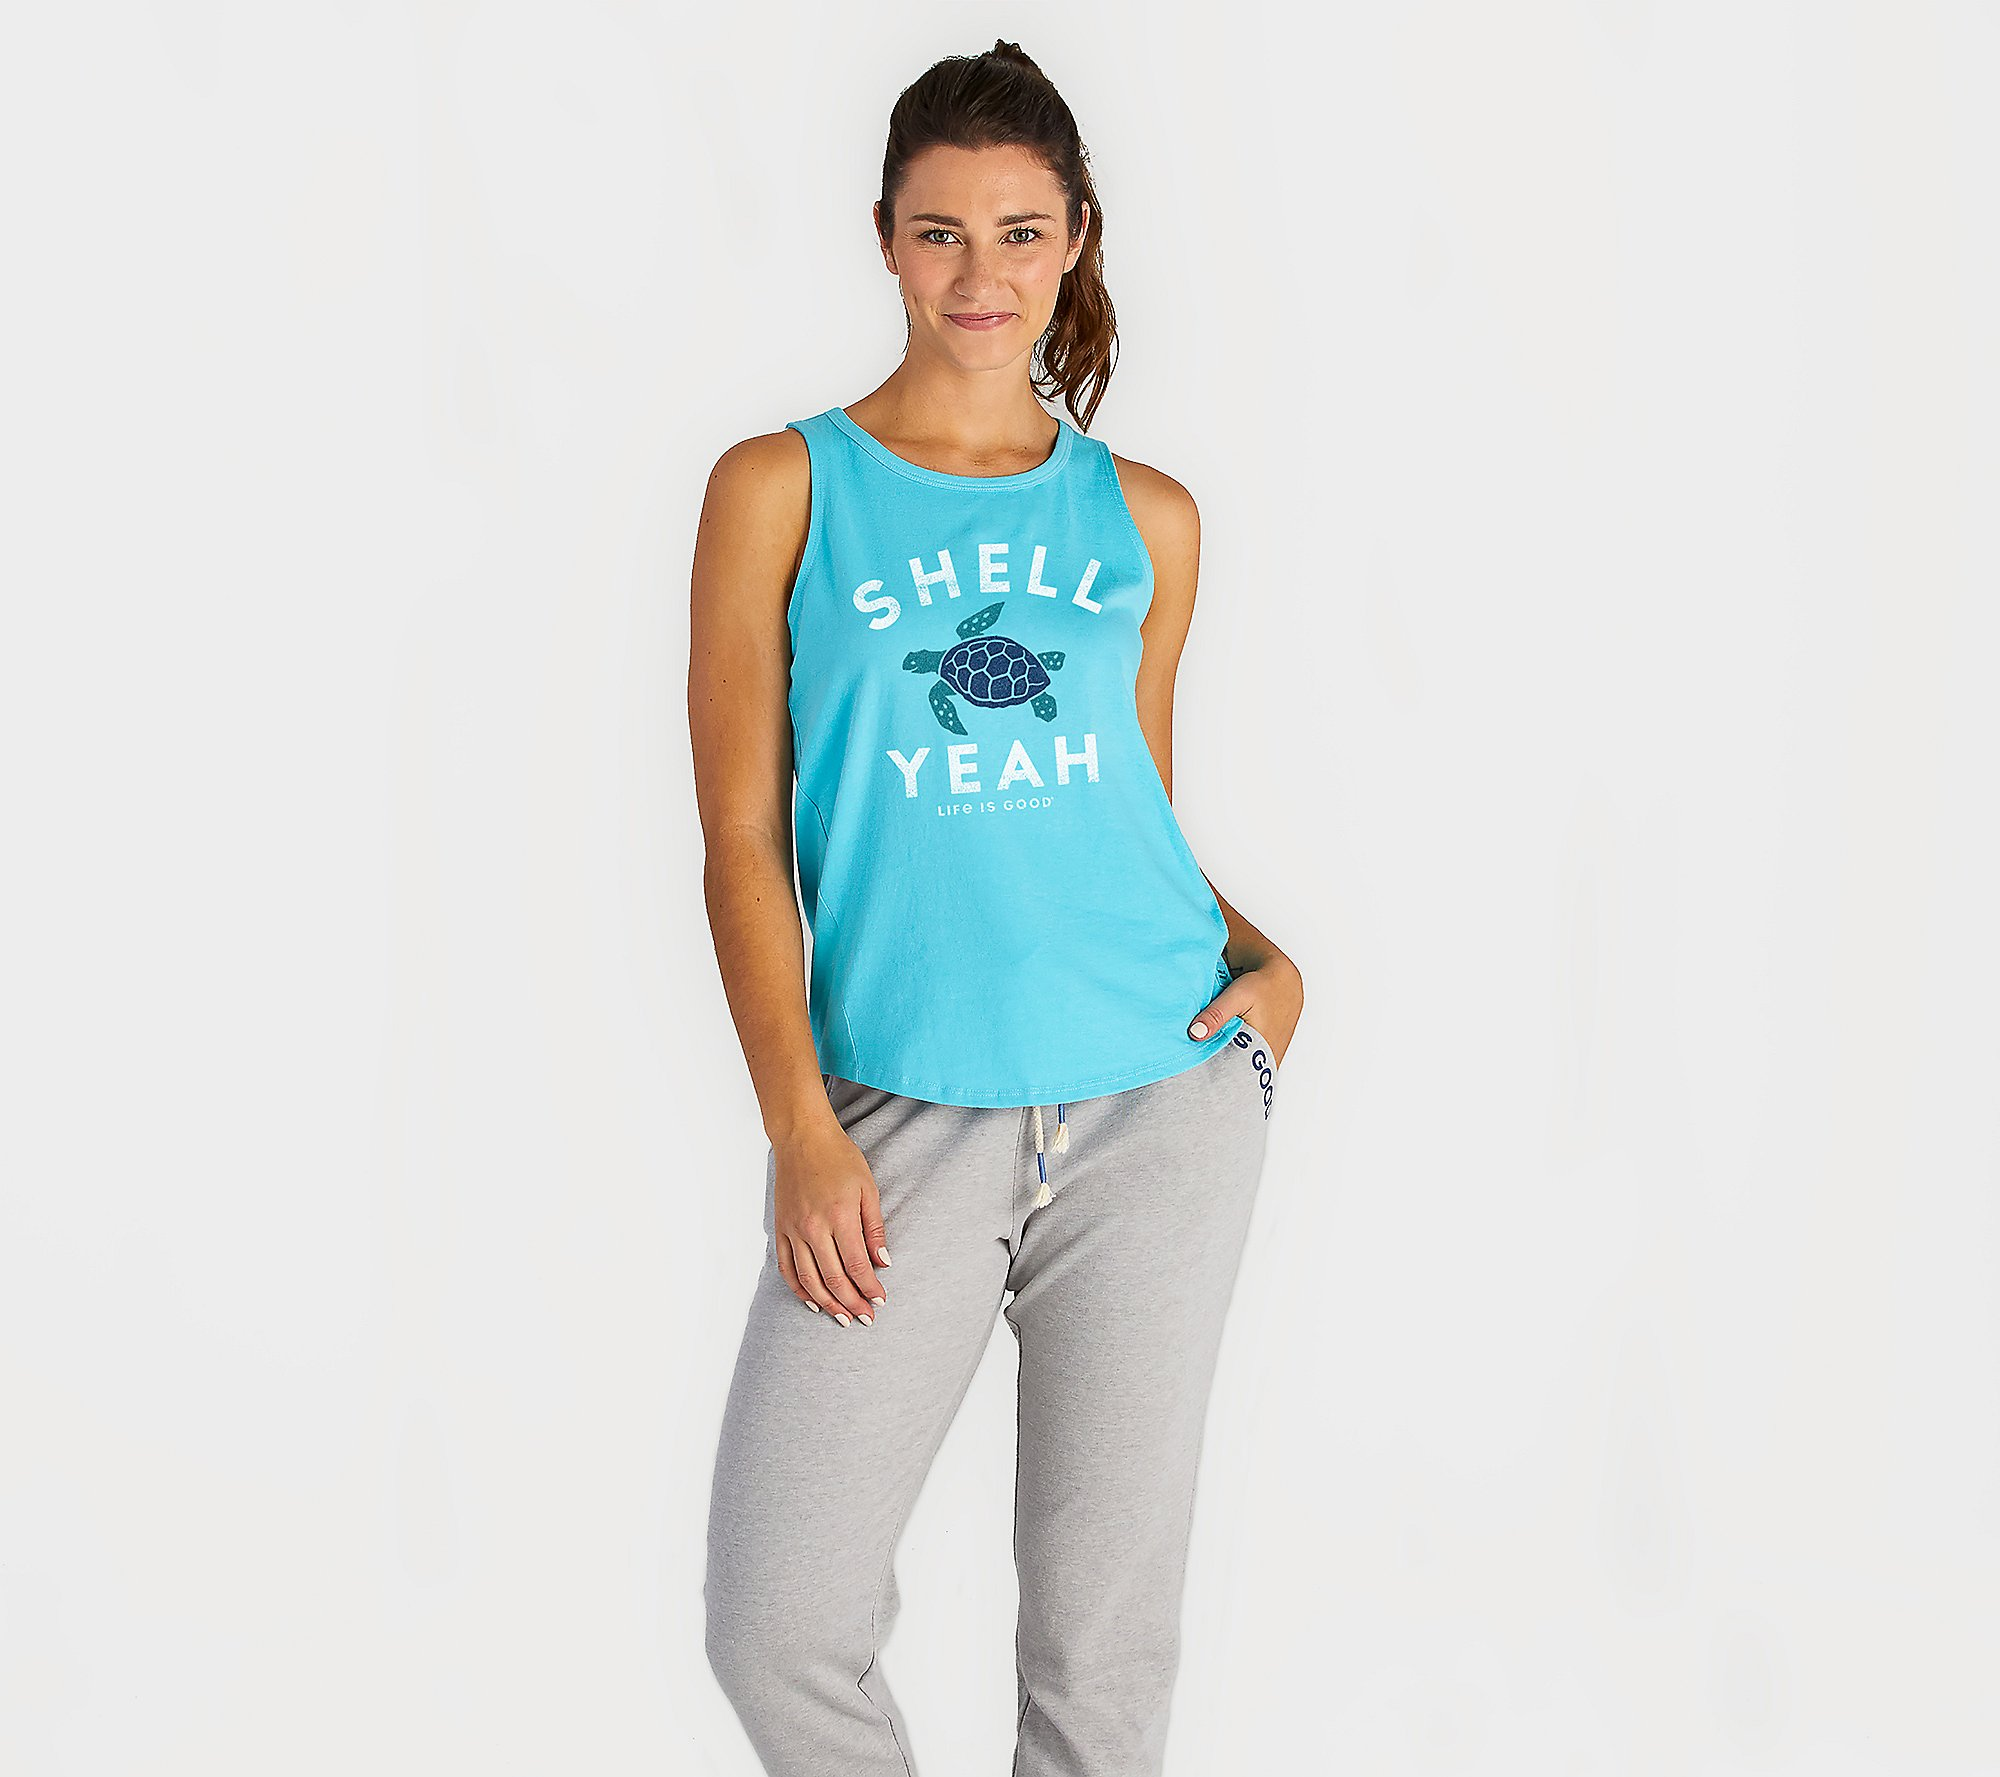 Life is Good Womens Graphic Tank Tops High-Low Collection